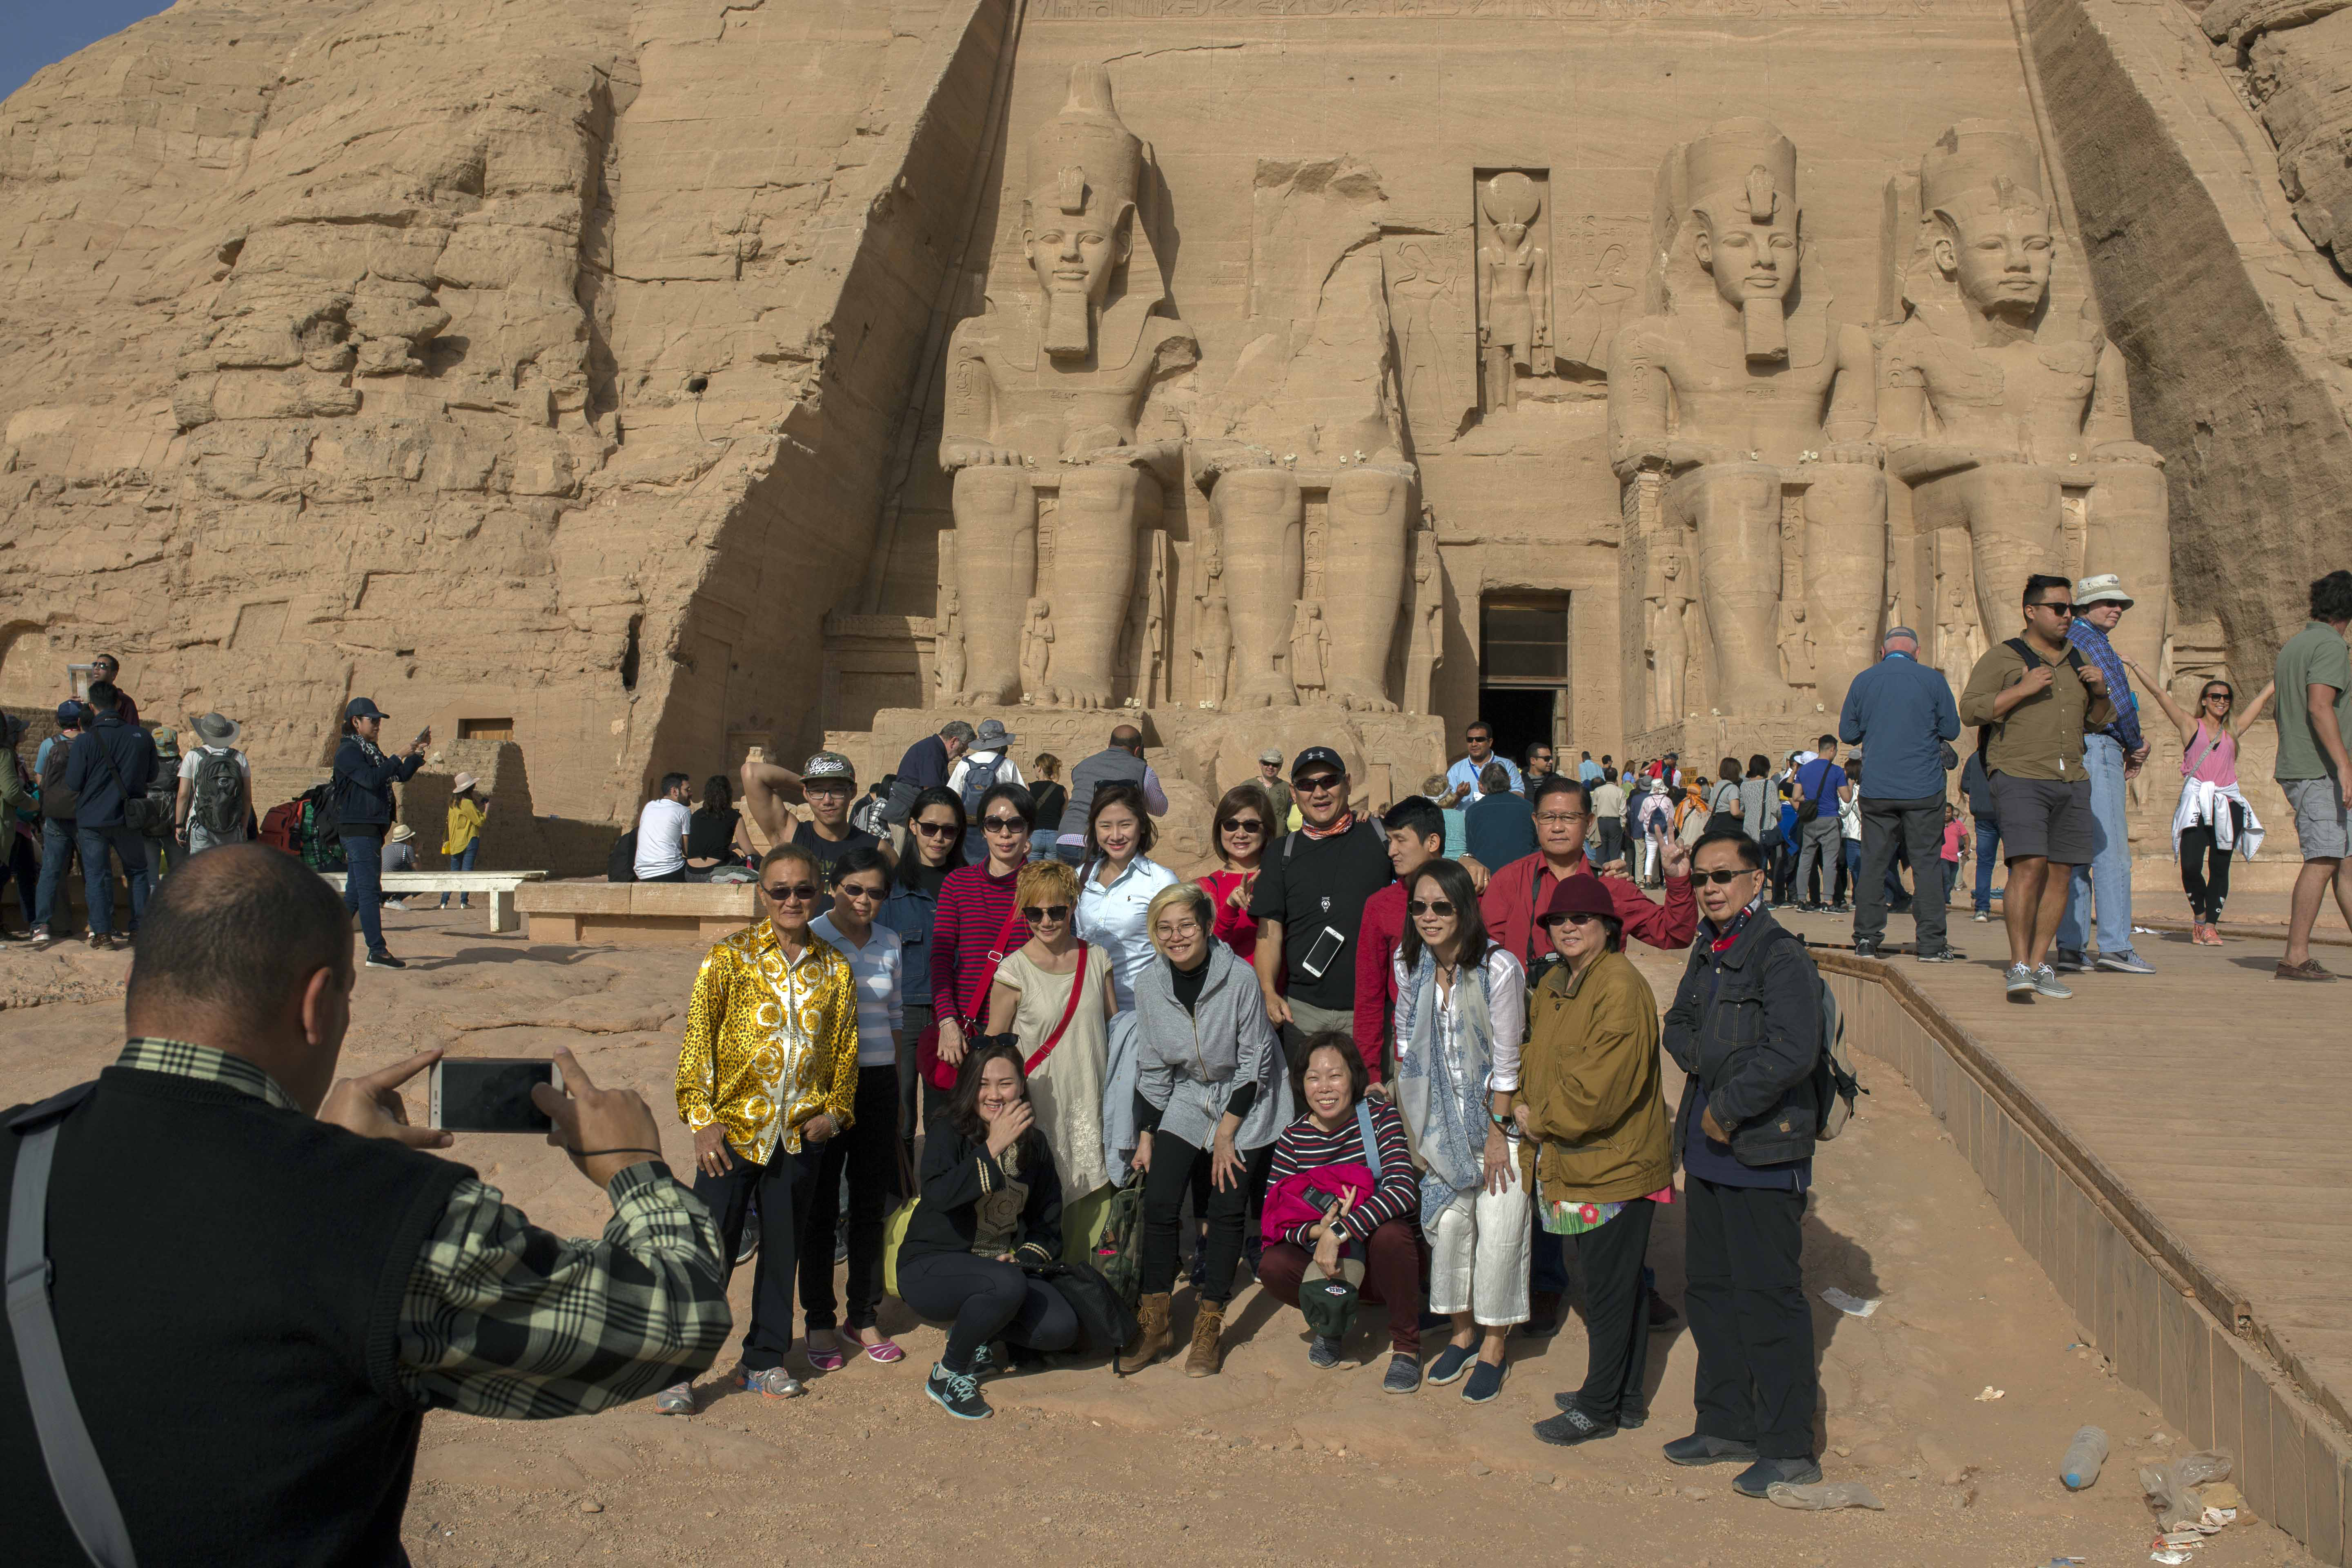 Tourists pose for a group portrait at Abu Simbel temple in Aswan, southern Egypt, after the rituals of the sun festival ended Thursday, Feb. 22, 2018. (H. Elrasam/VOA)